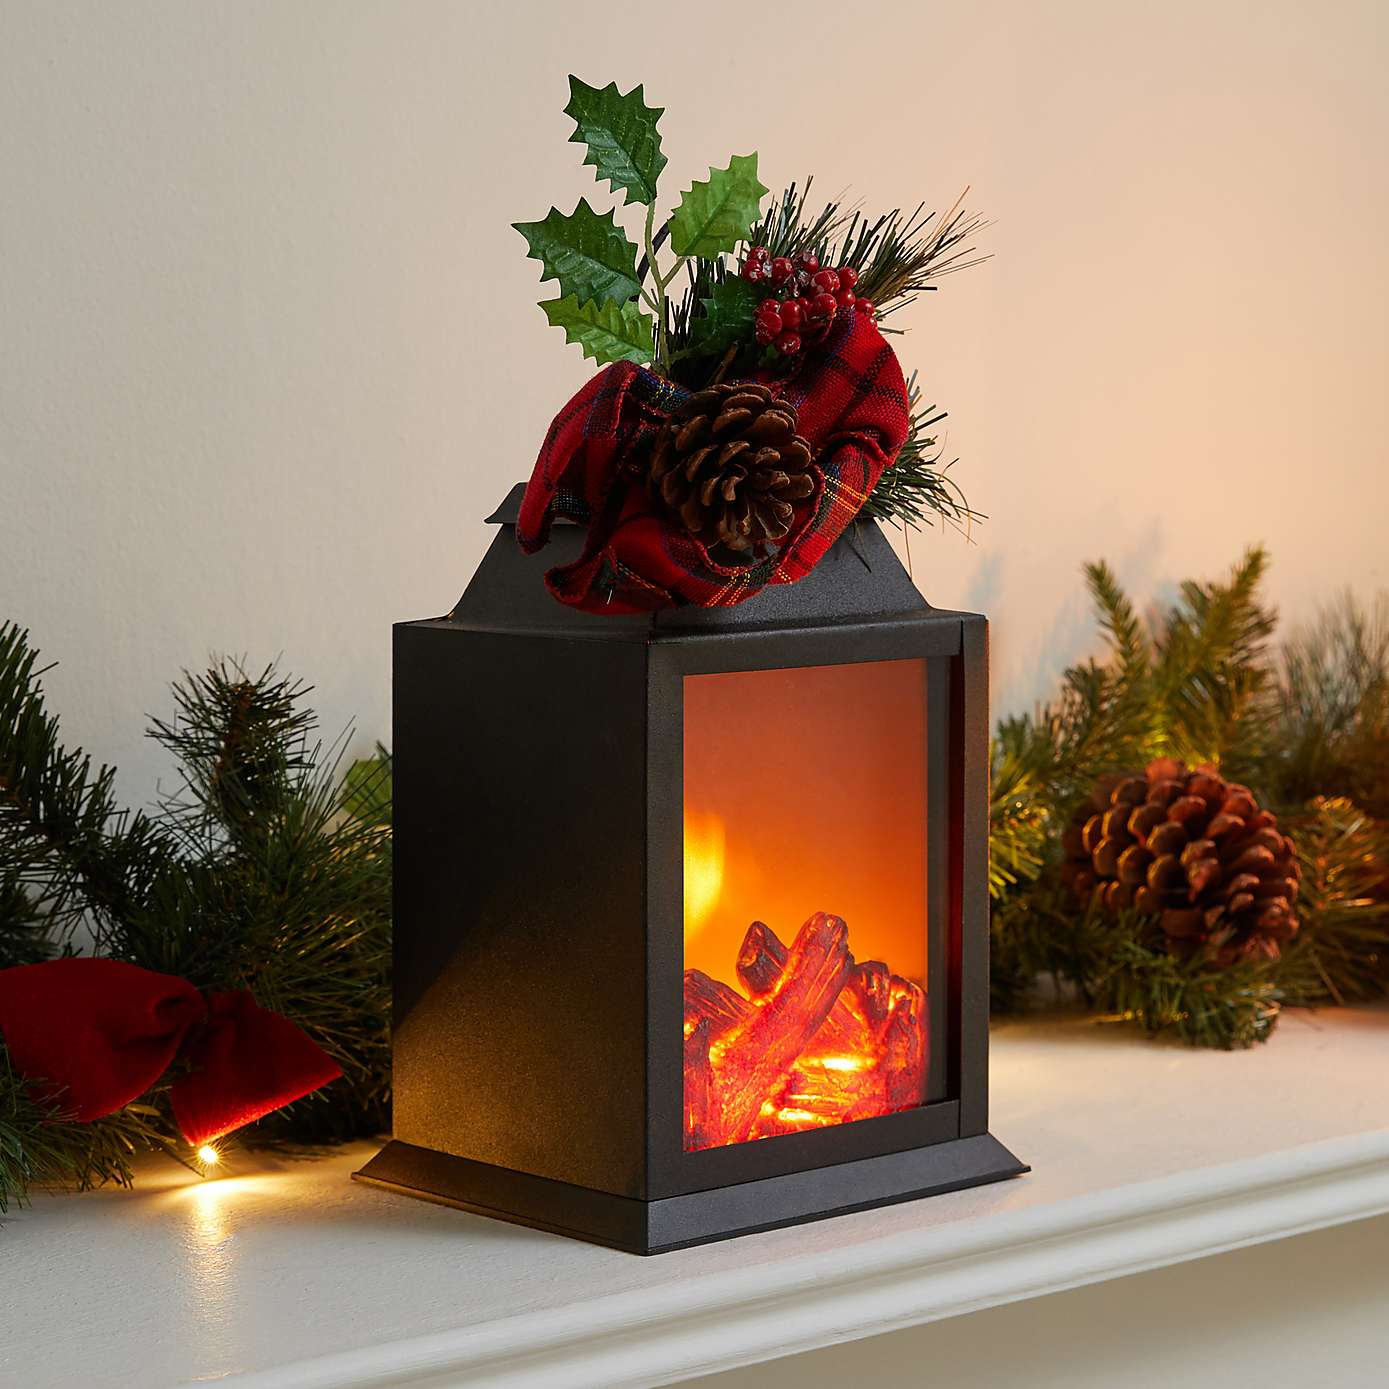 Black Fireplace Lantern with Holly and Berries £12 on Dunelm